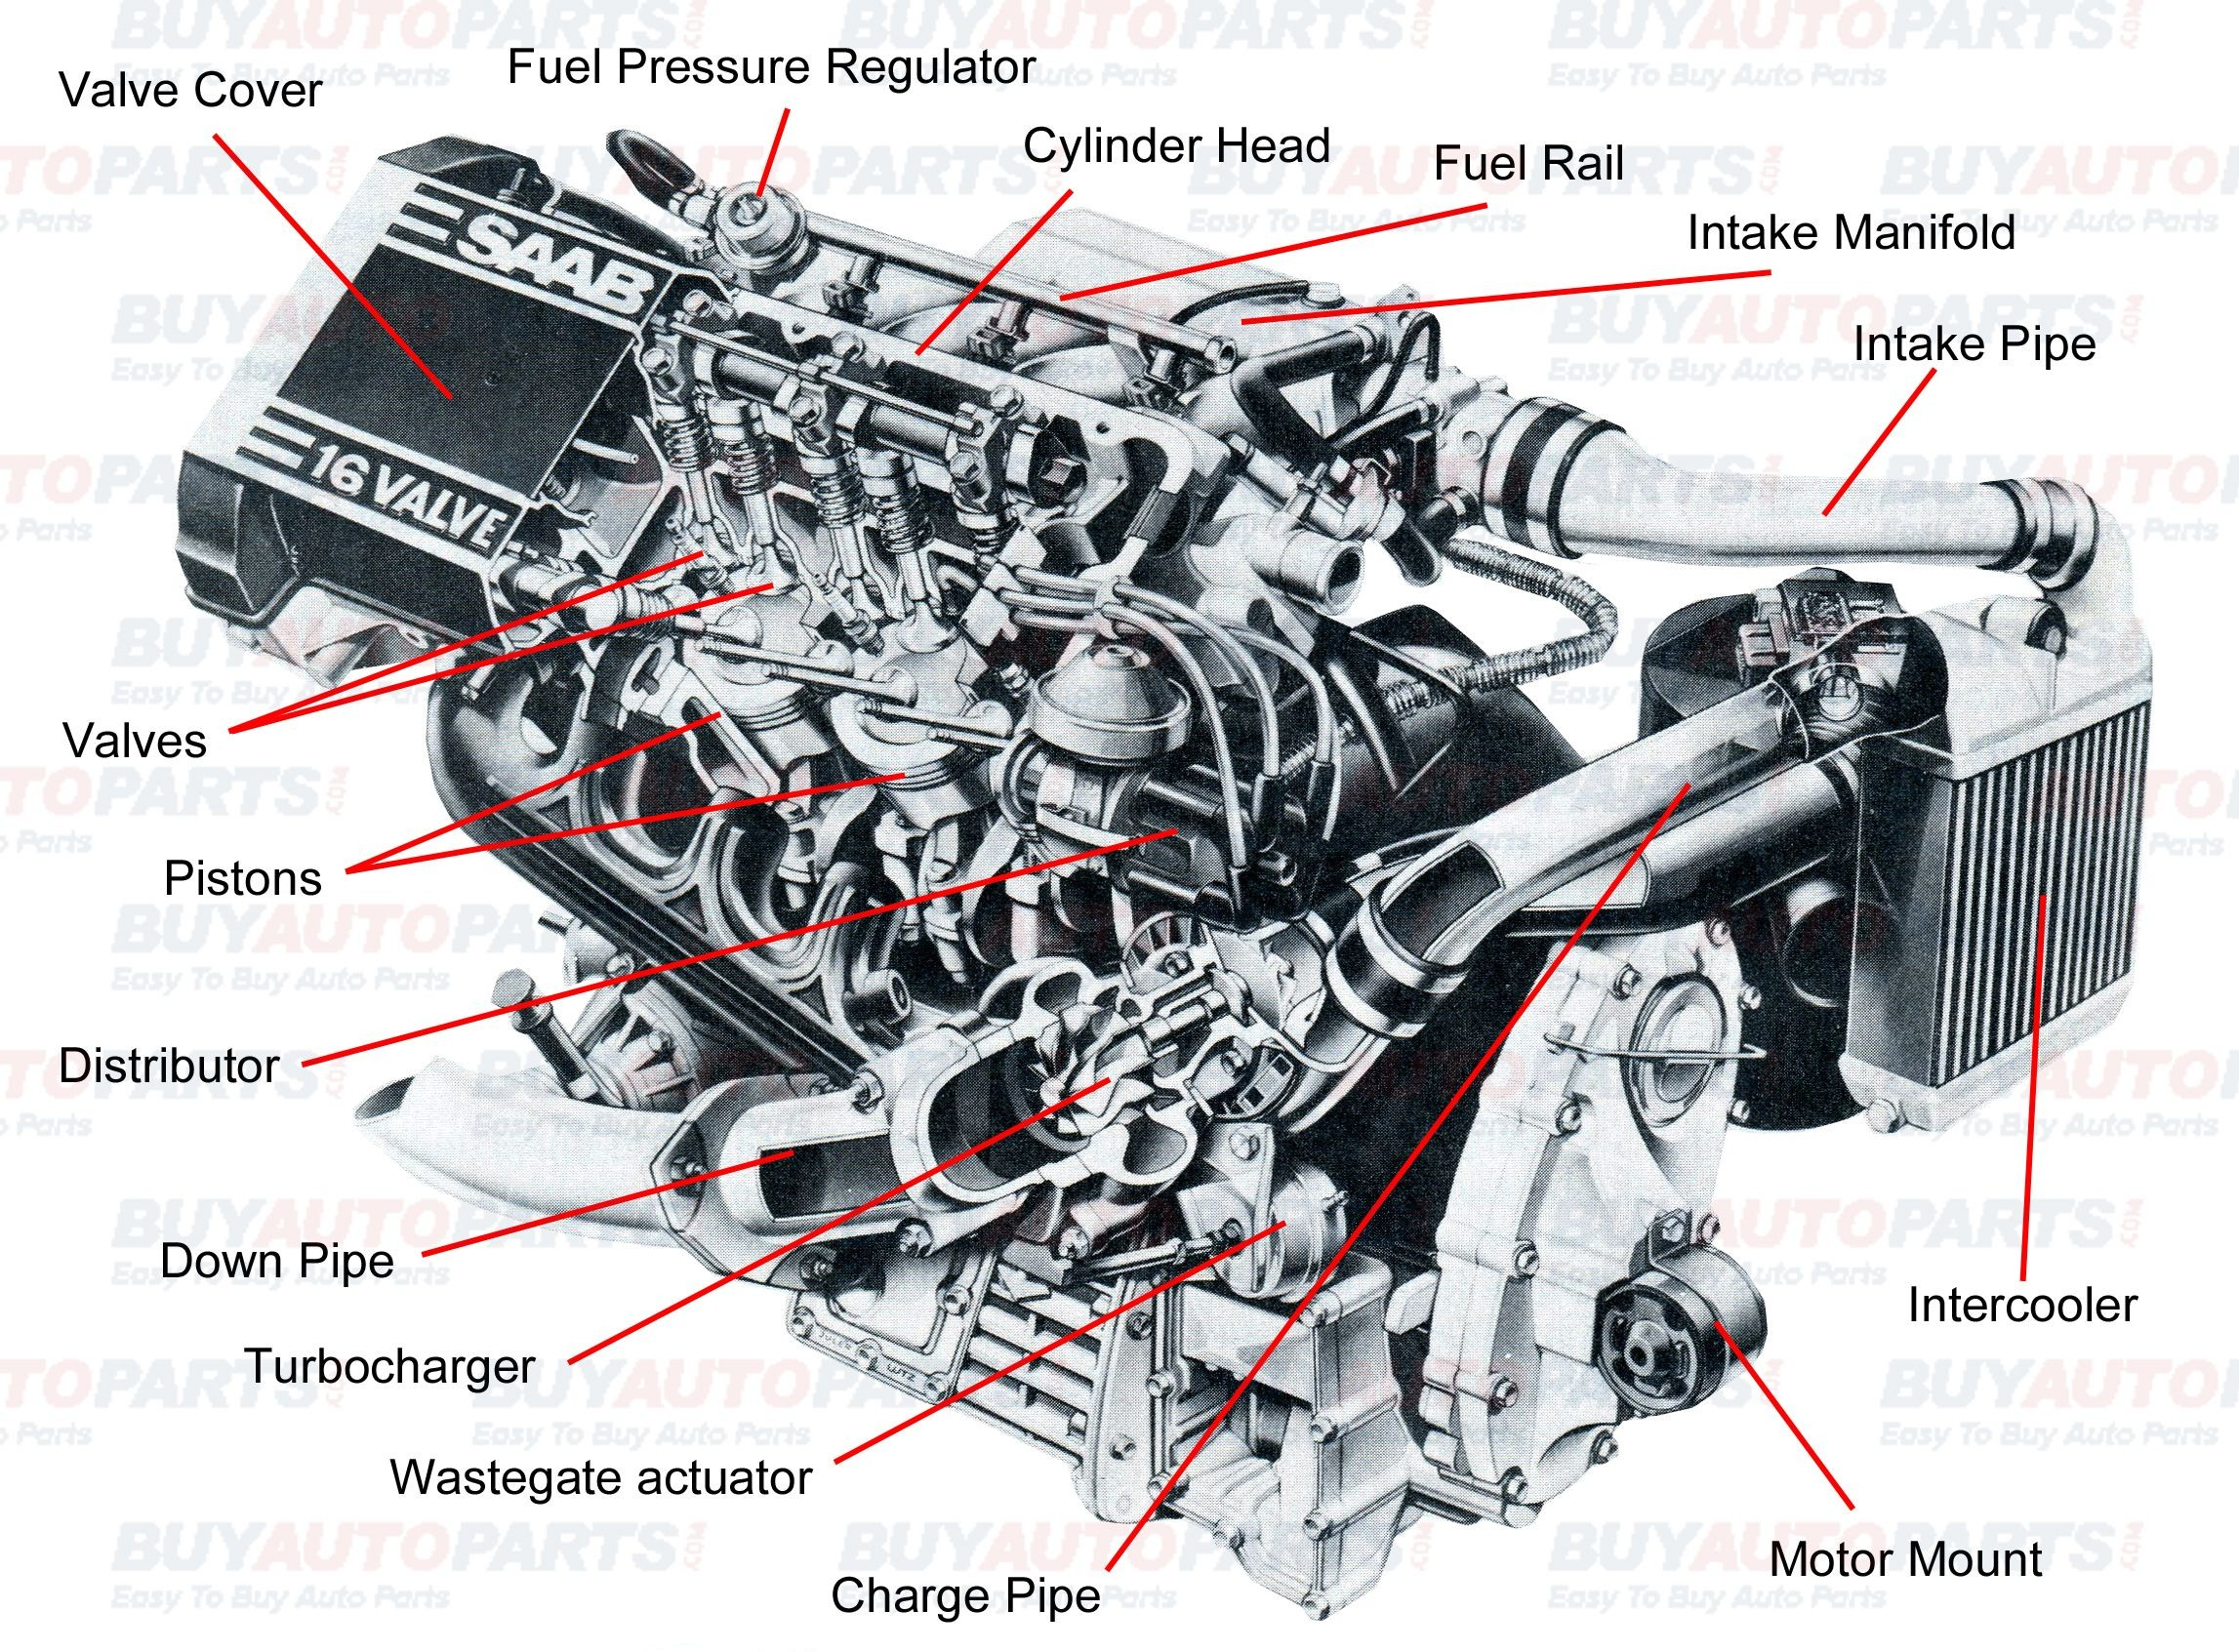 Diagram Of Car Parts All Internal Bustion Engines Have the Same Basic Ponents the Of Diagram Of Car Parts